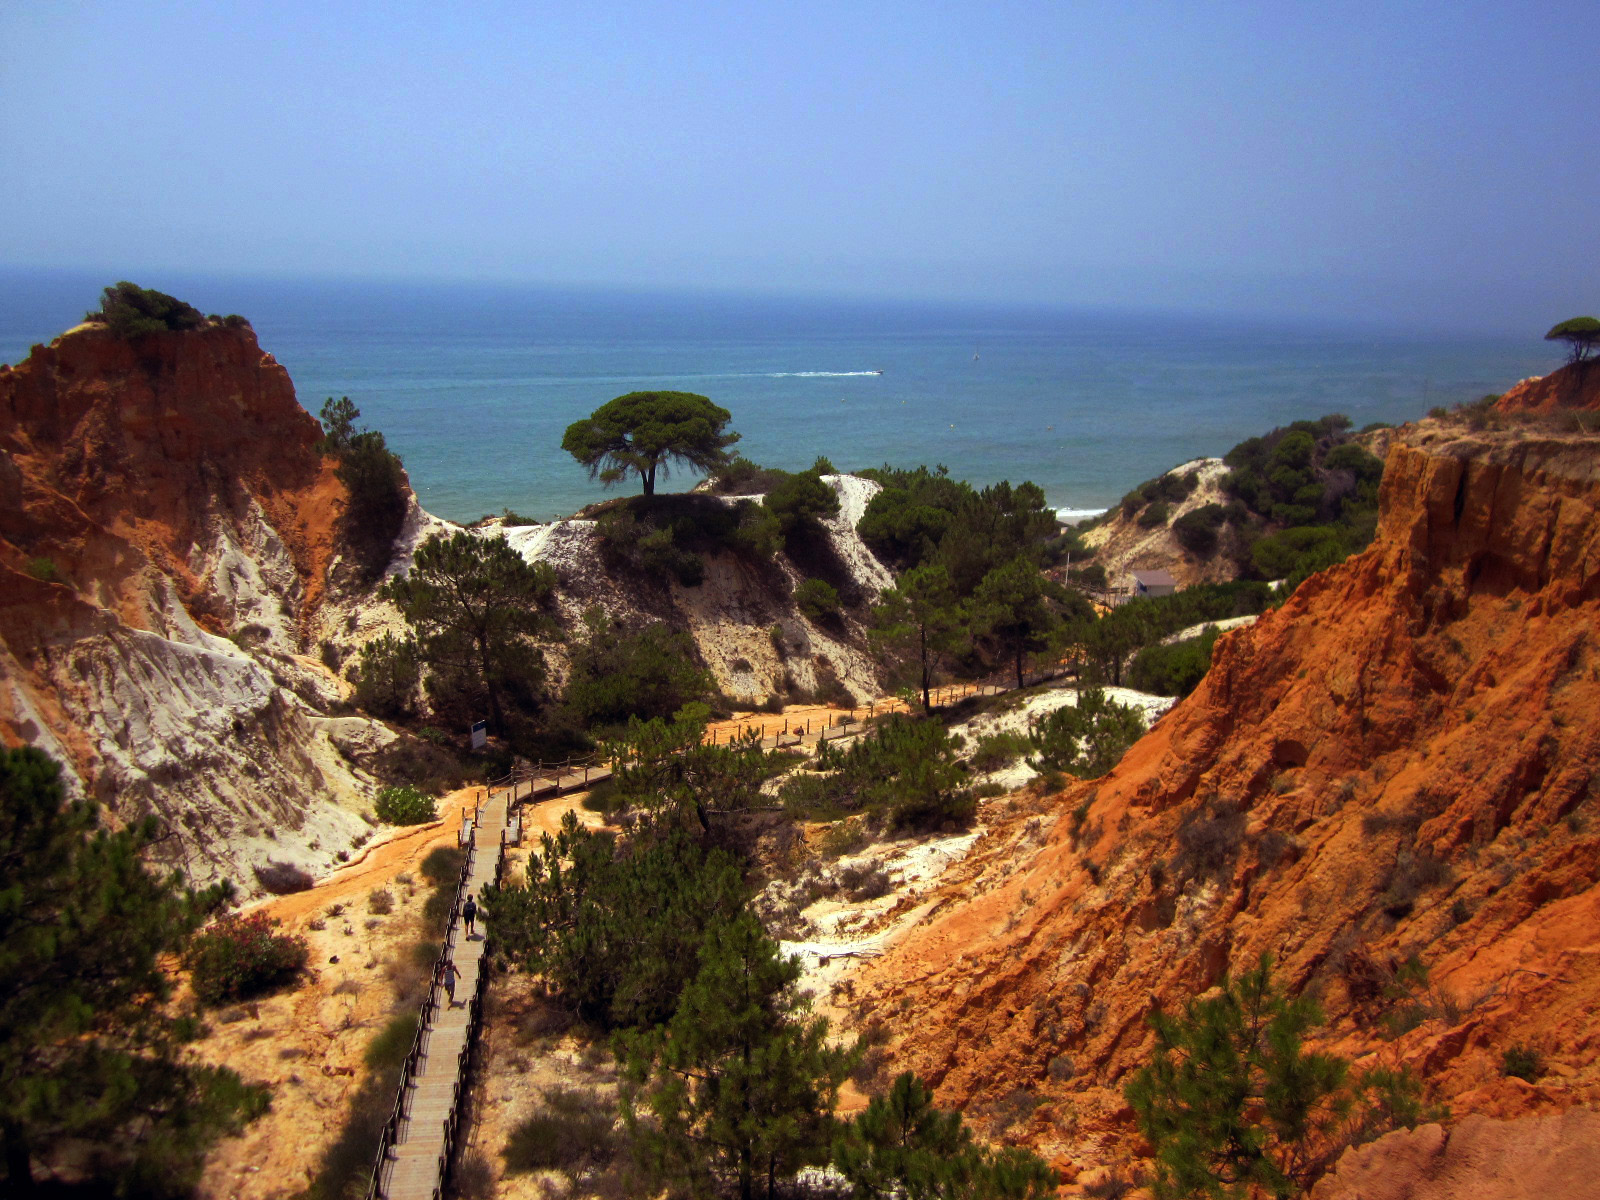 2010 – The Algarve, Albufiera, Lagos, Silves Portugal